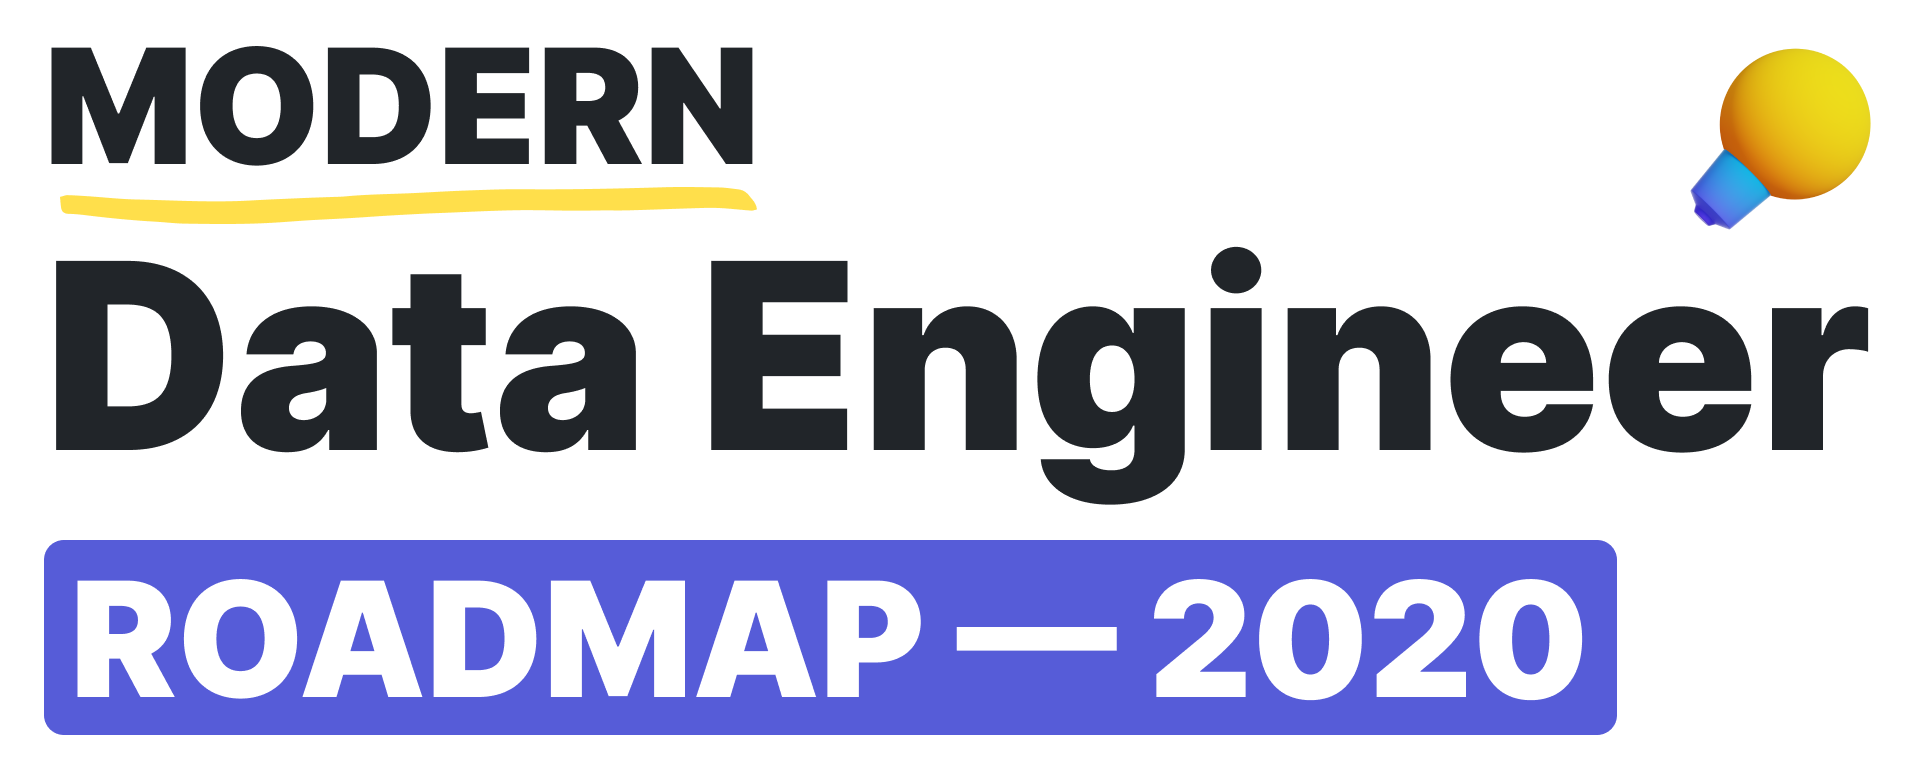 Cual es el roadmap para ser un Data Engineer